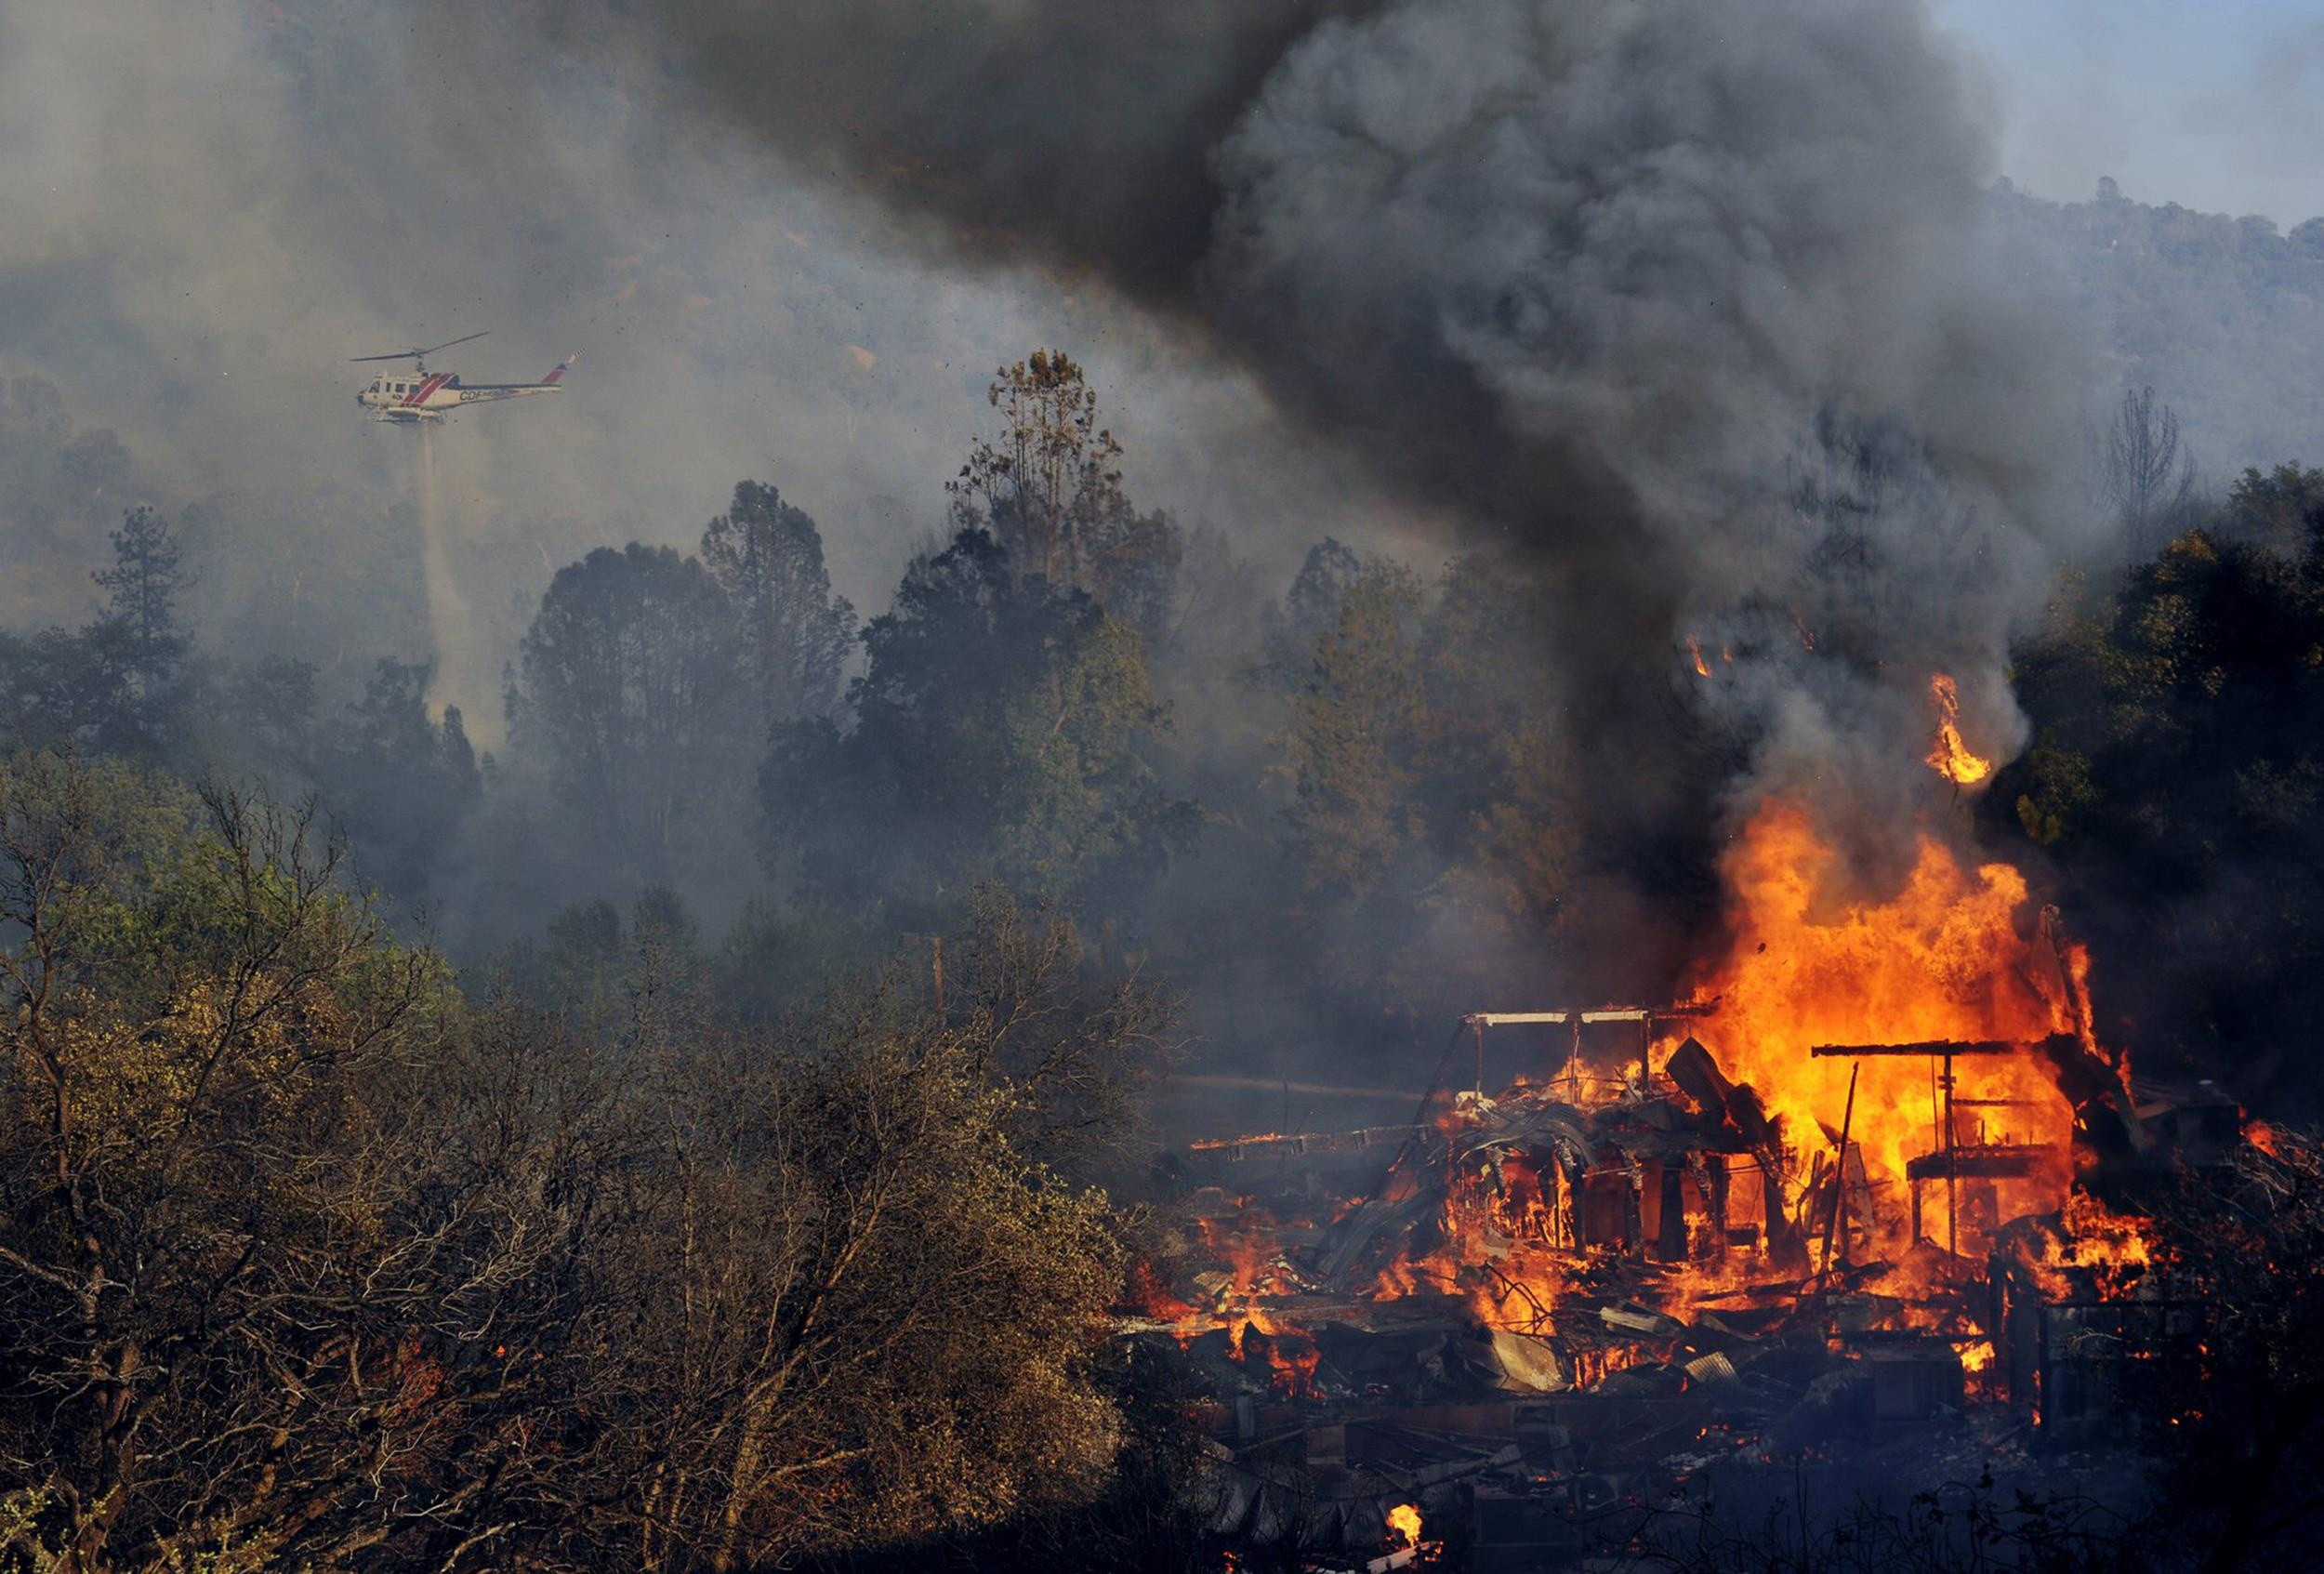 Image: A structure burns along Highway 41 in Oakhurst, Calif., on Aug. 18